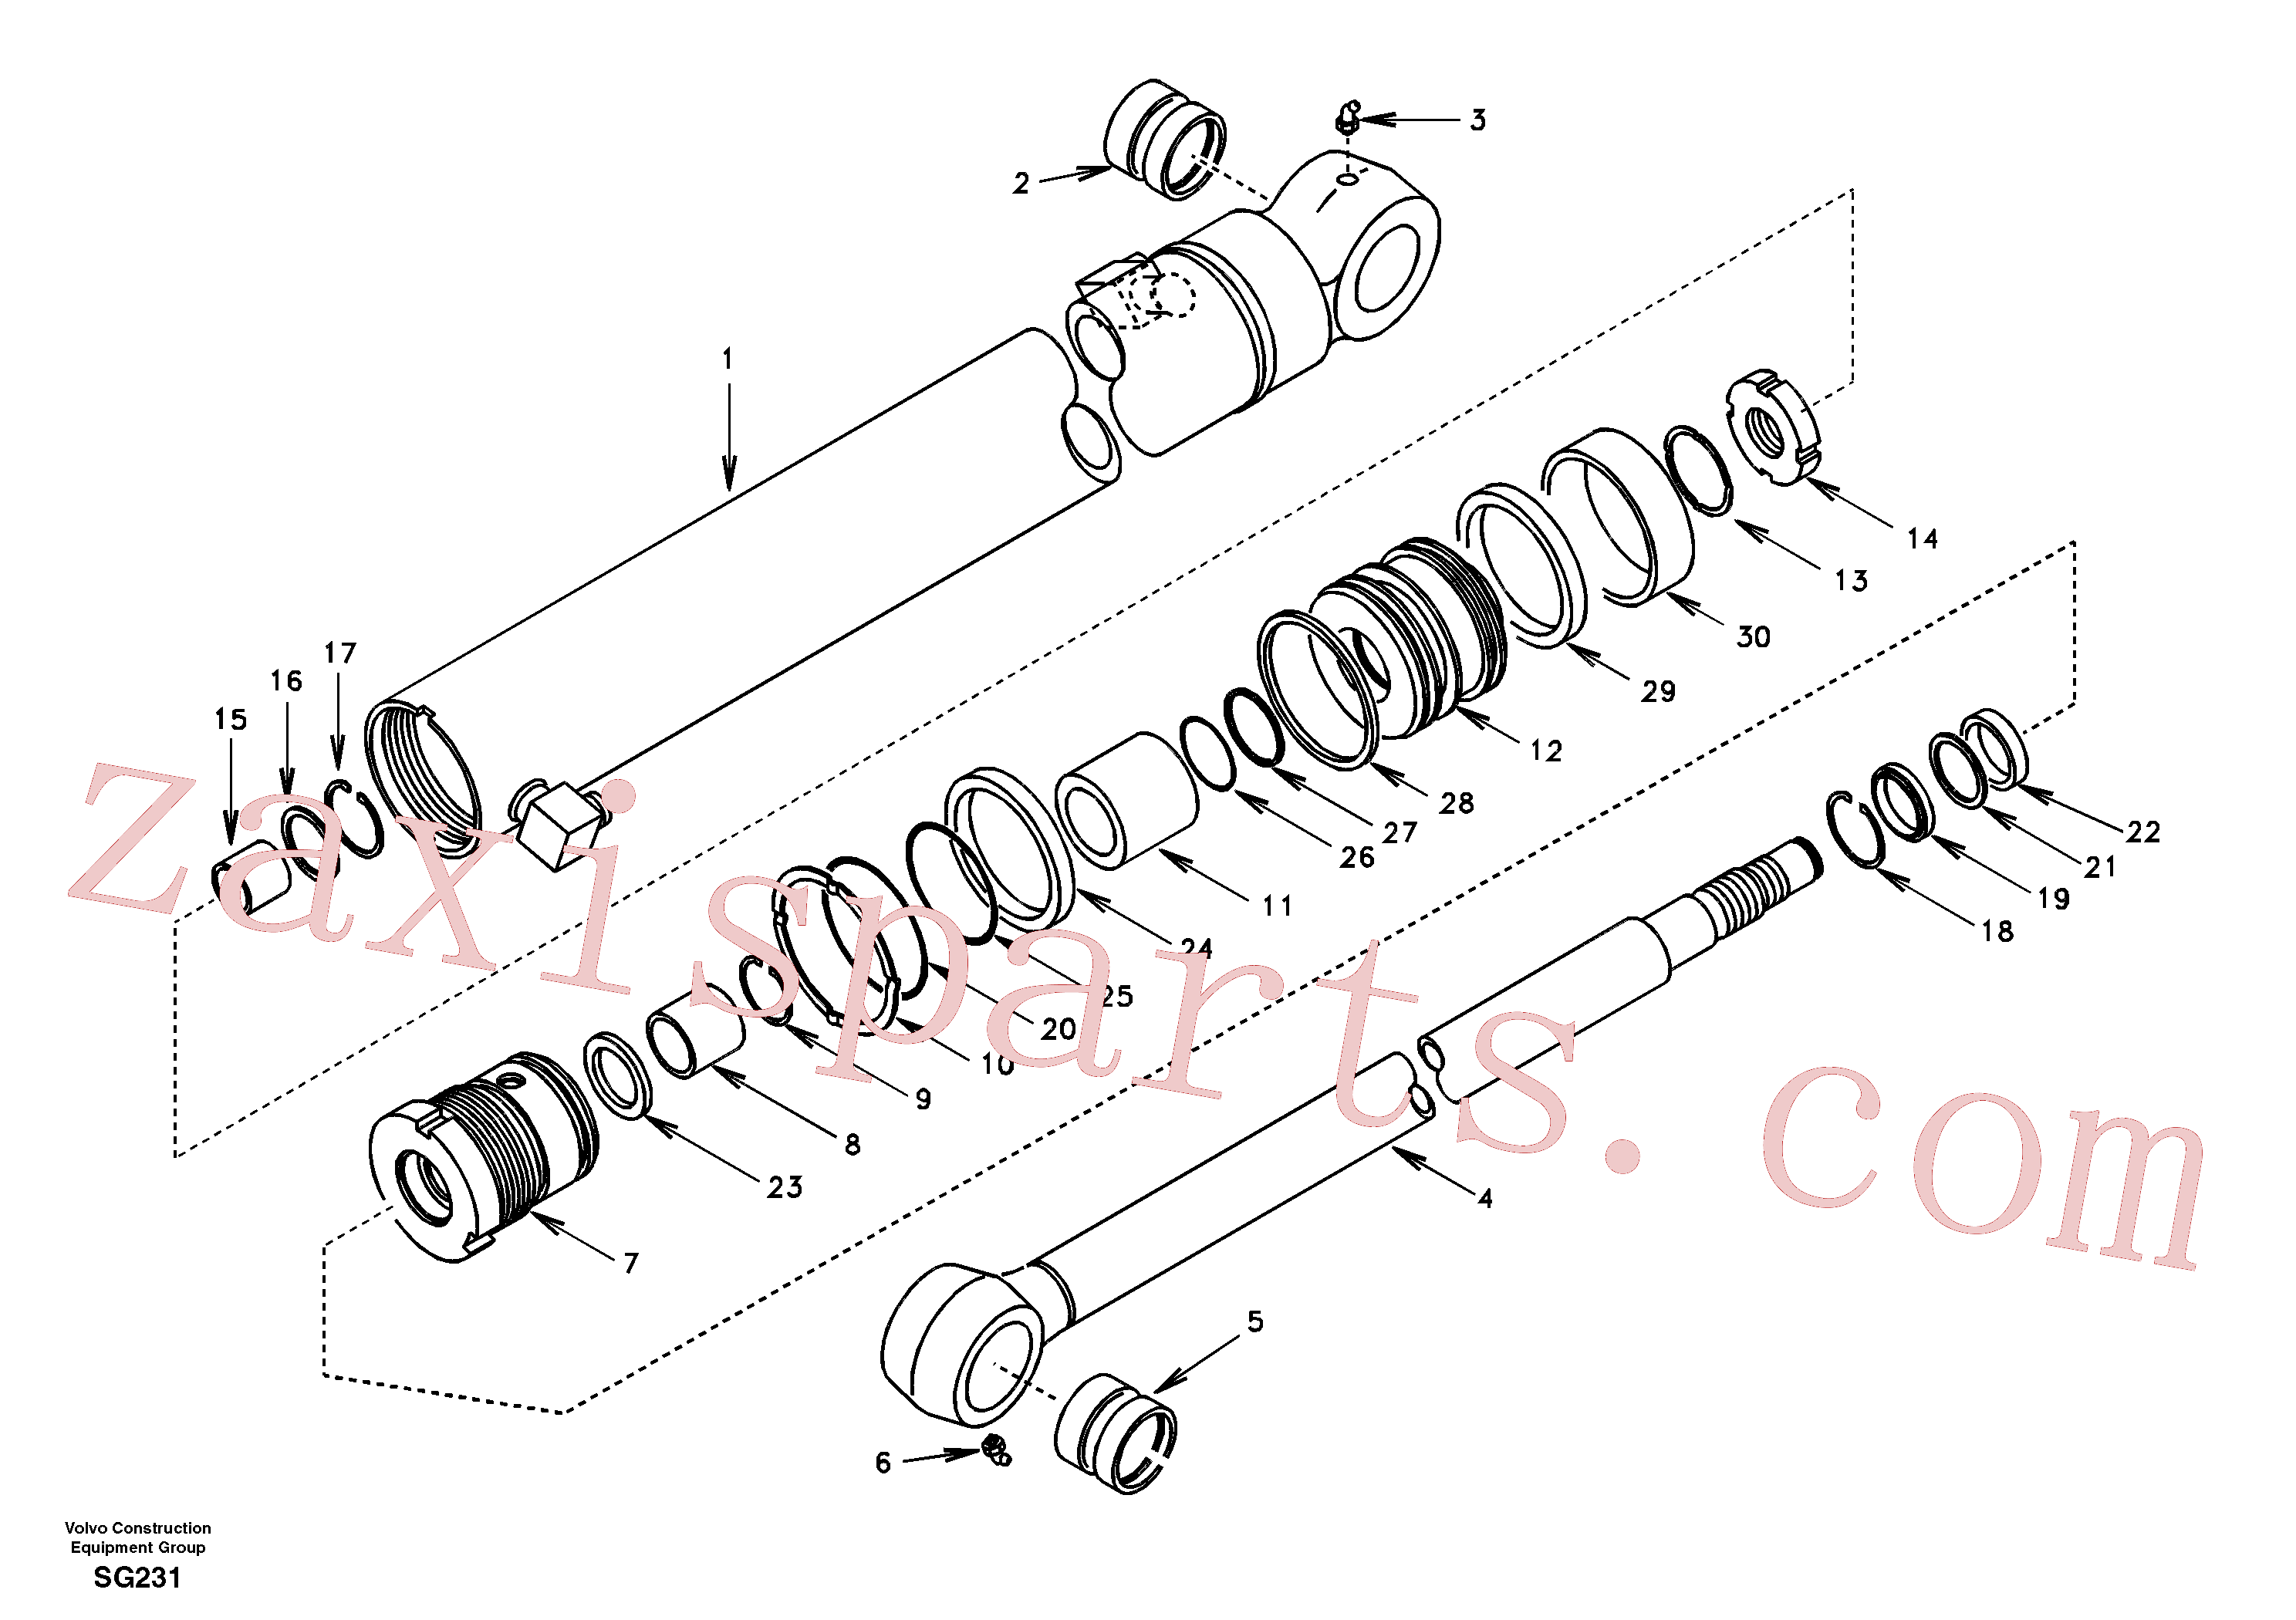 SA9564-20550 for Volvo Dipper arm cylinder(SG231 assembly)